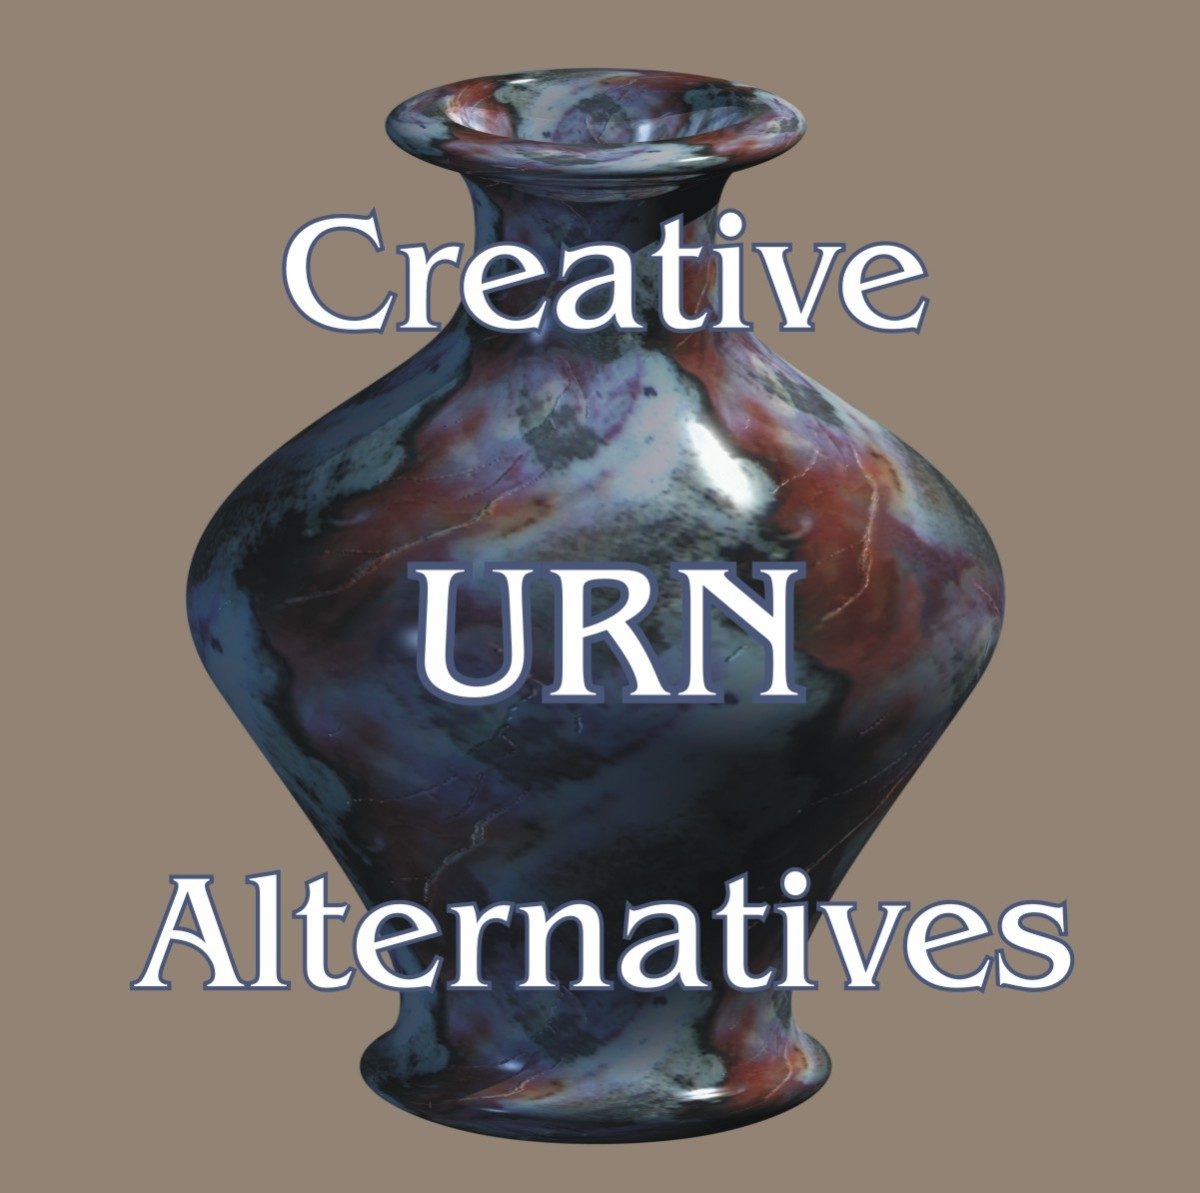 Cremation: One Man's Urn Alternatives